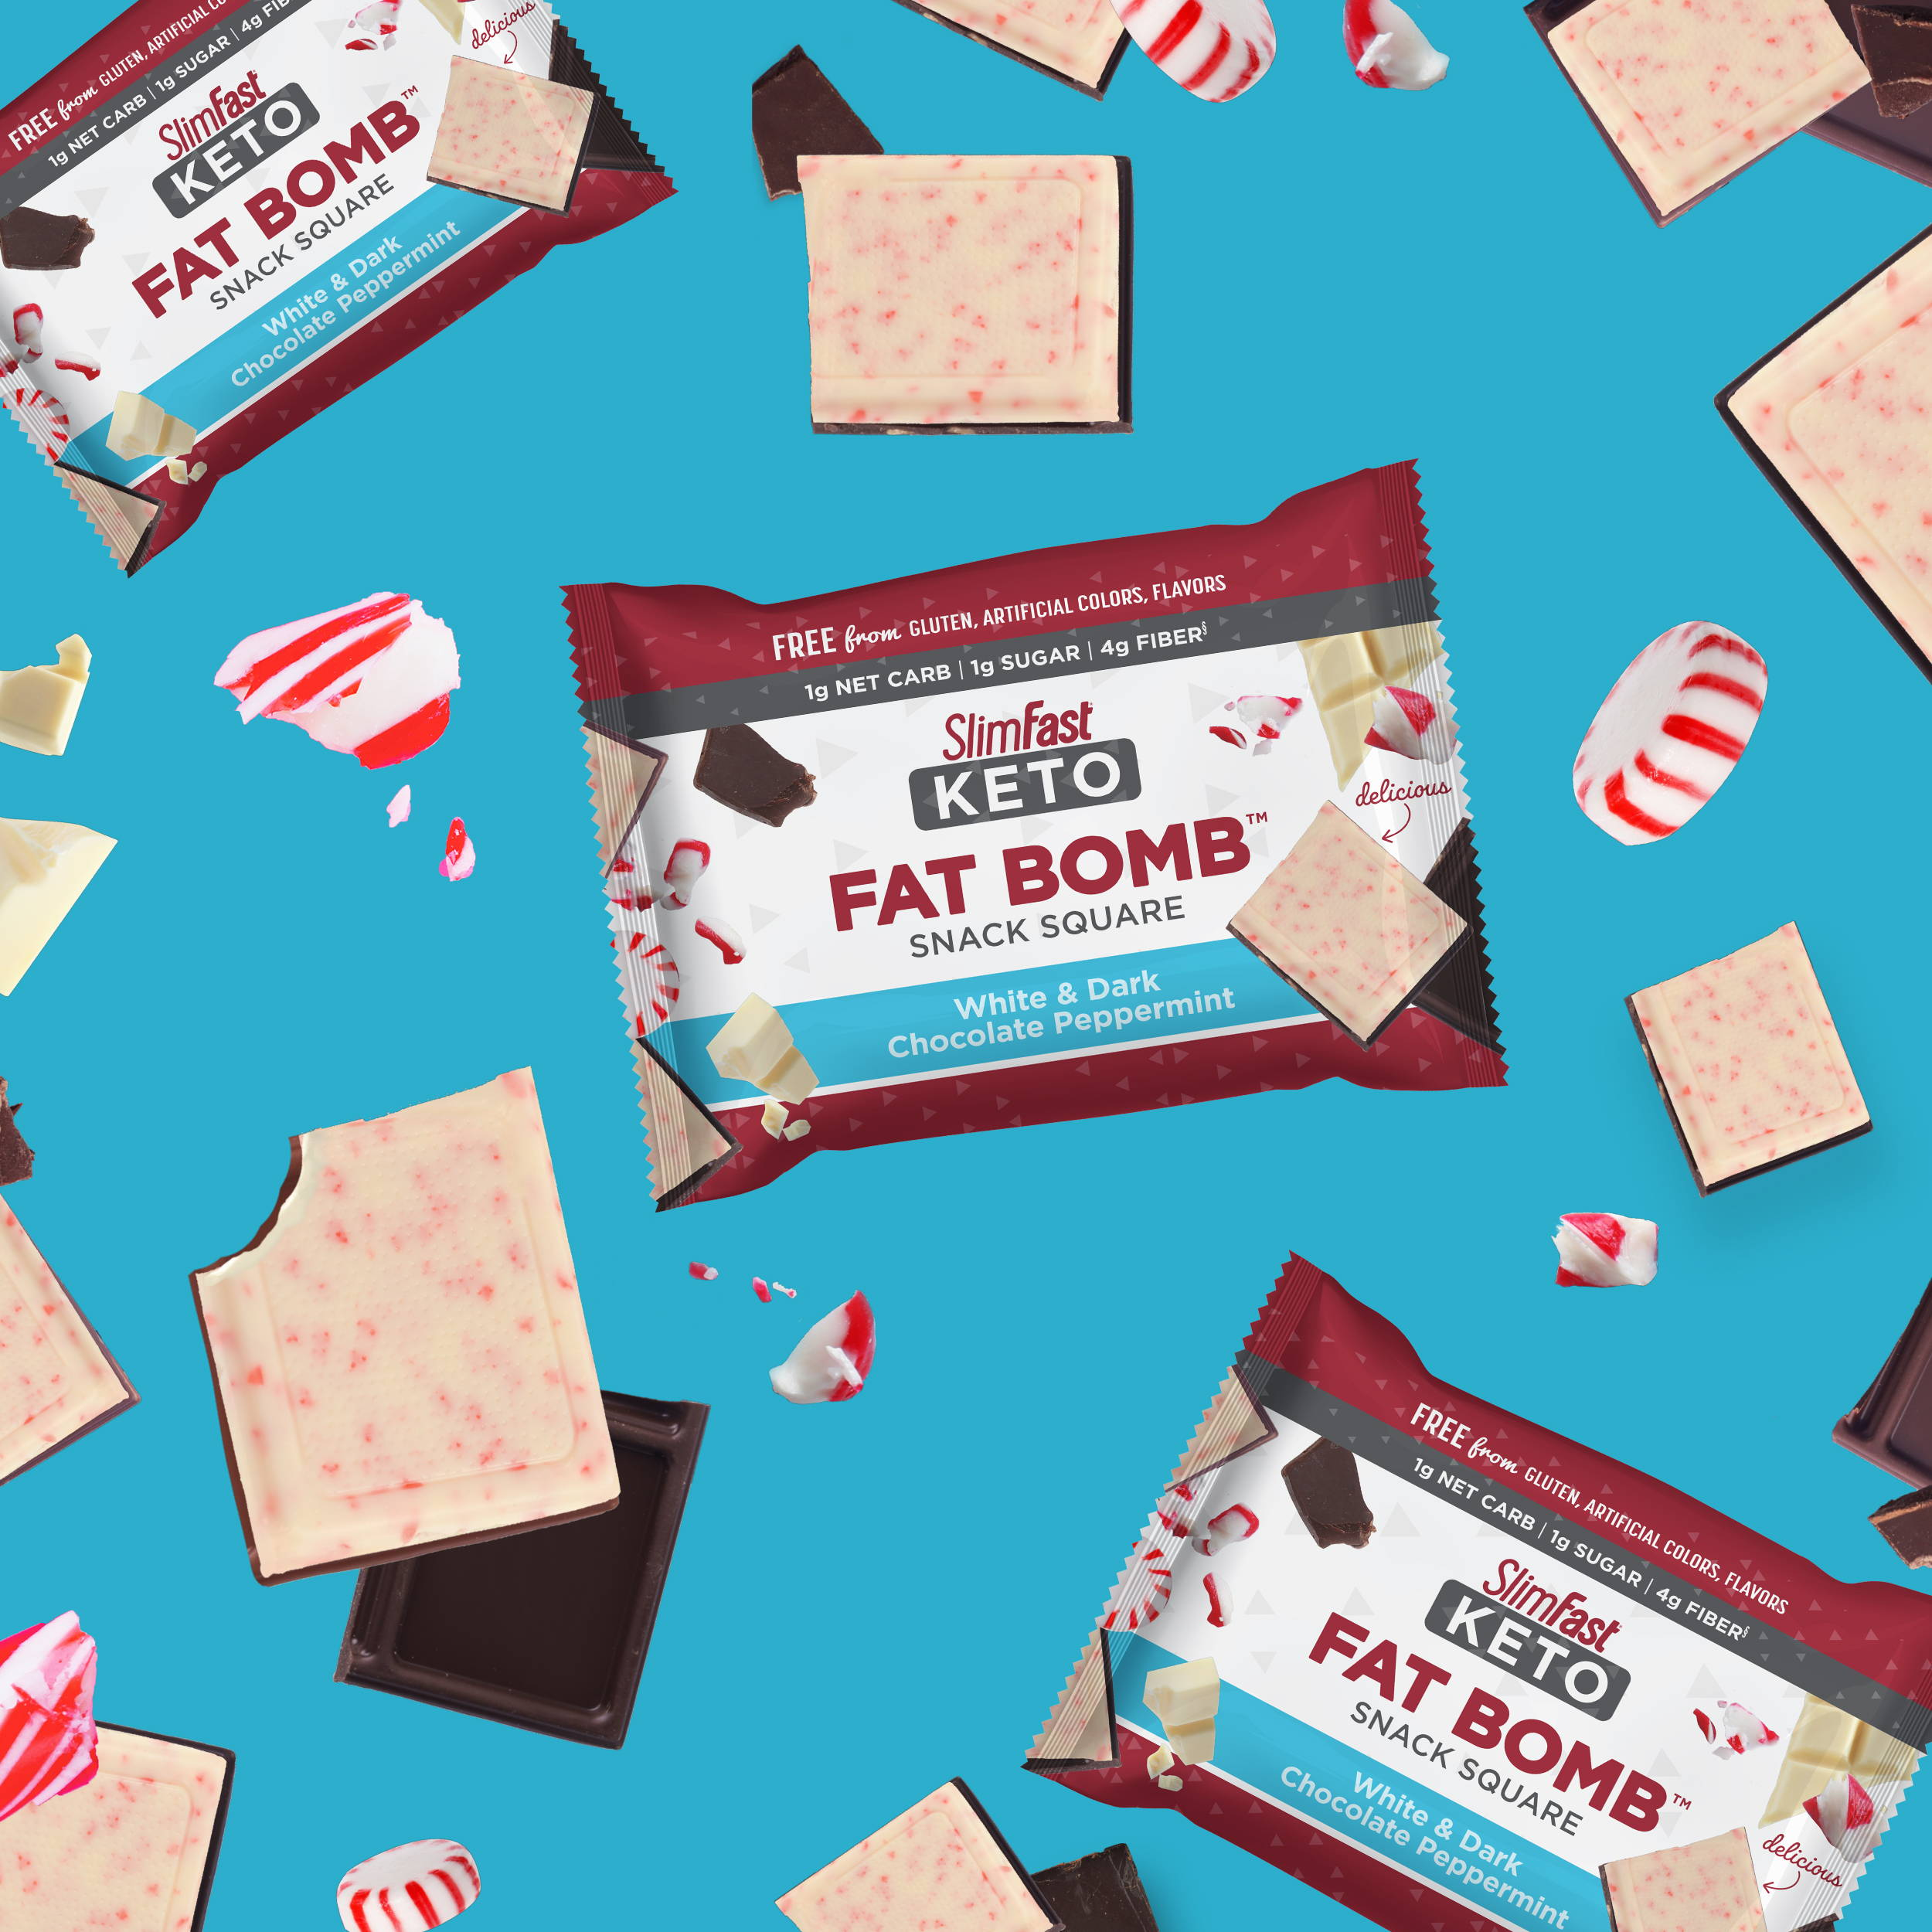 Products SlimFast Keto Fat Bomb White & Dark Chocolate Peppermint Snack Square product lifestyle image w